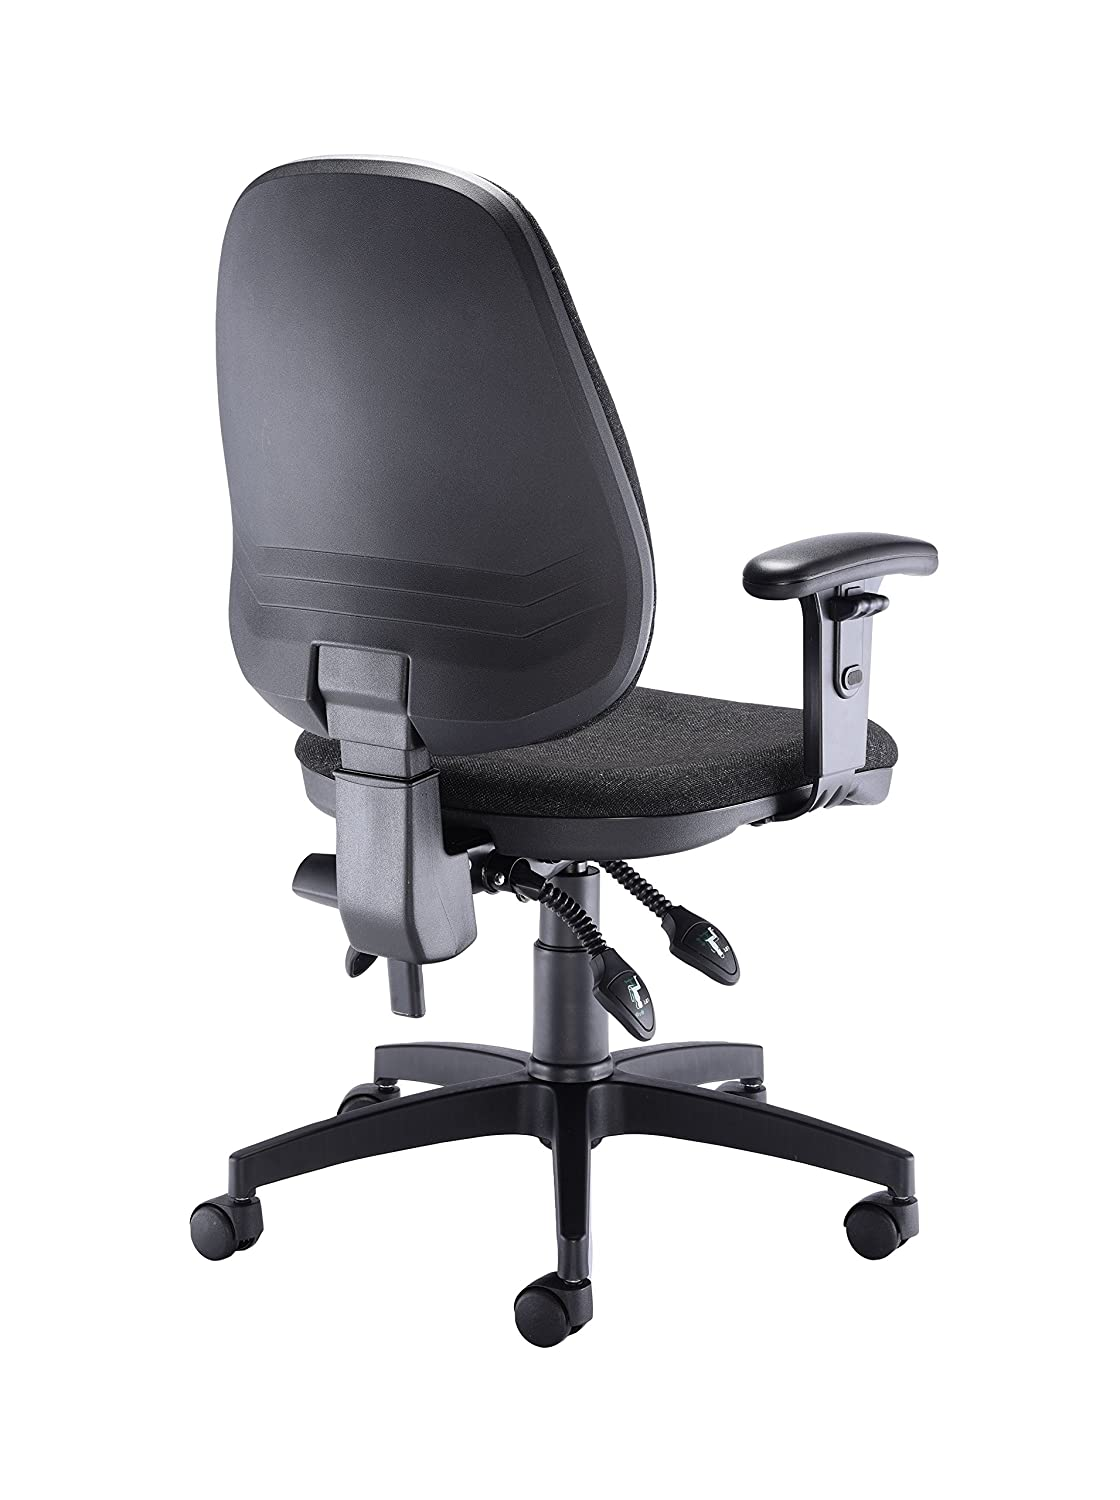 403449e03c18 Office Hippo Deluxe High-Back Swivel Desk Chair with Fixed Arms ...